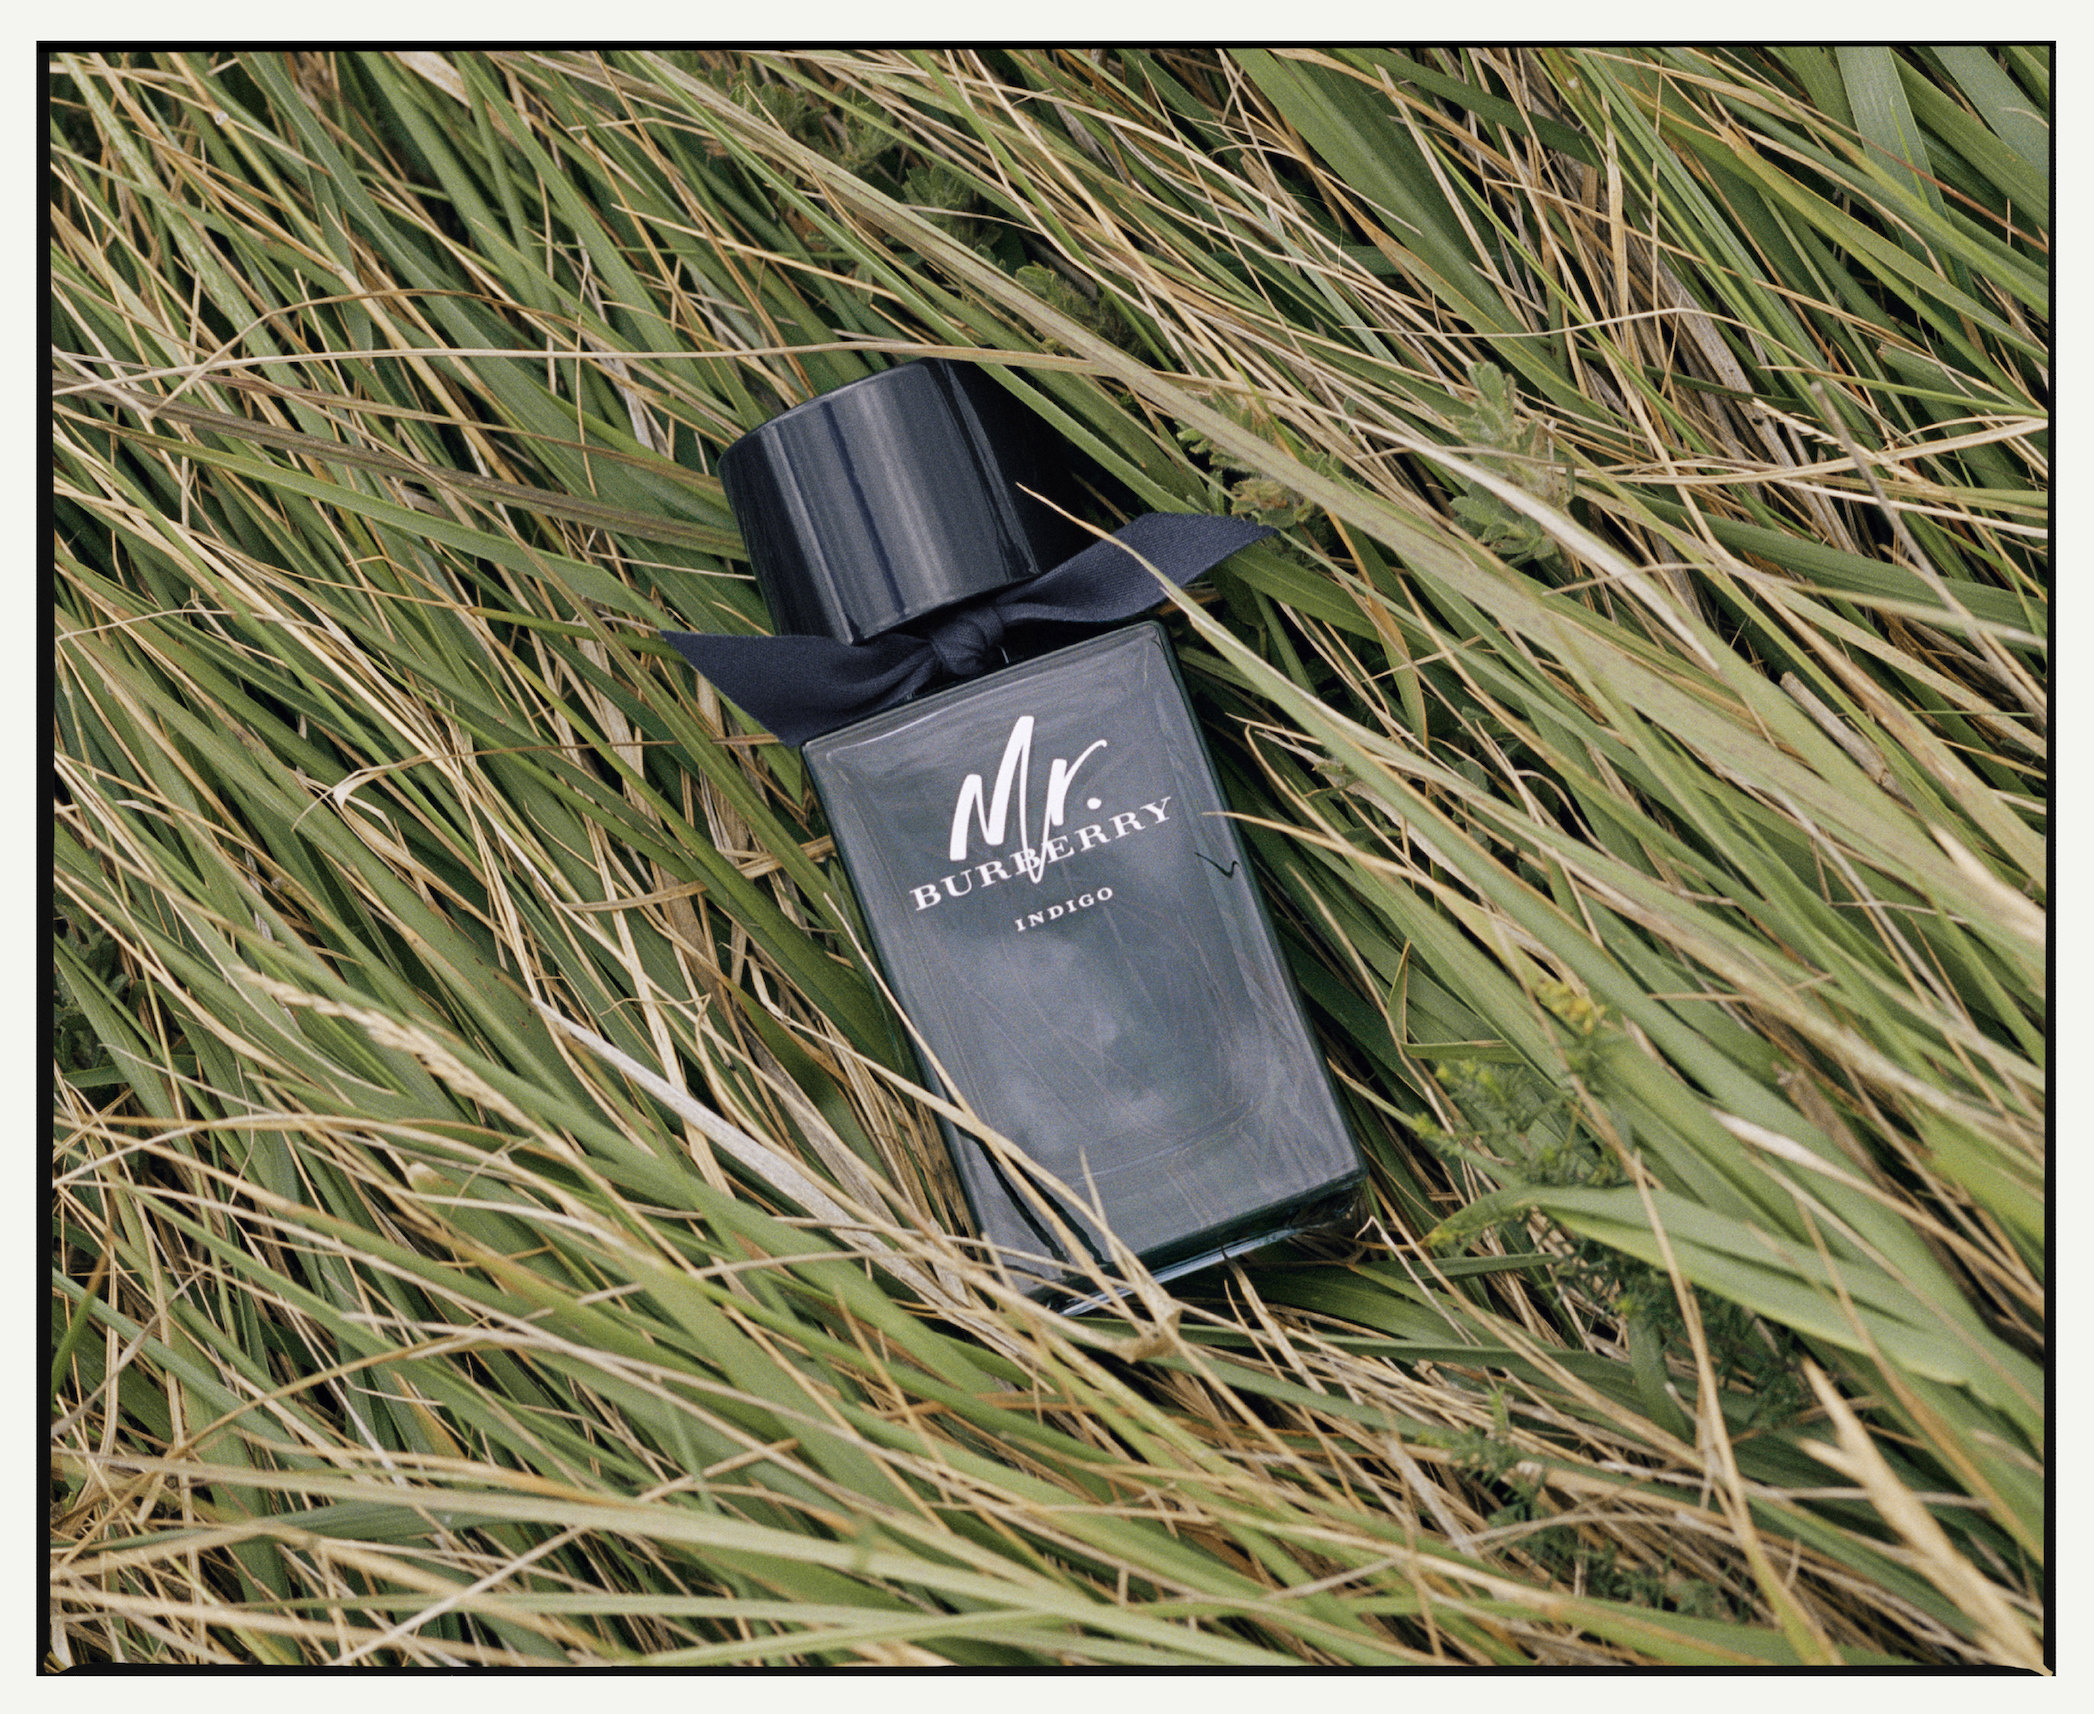 New men's groomings products: Burberry Mr Indigo